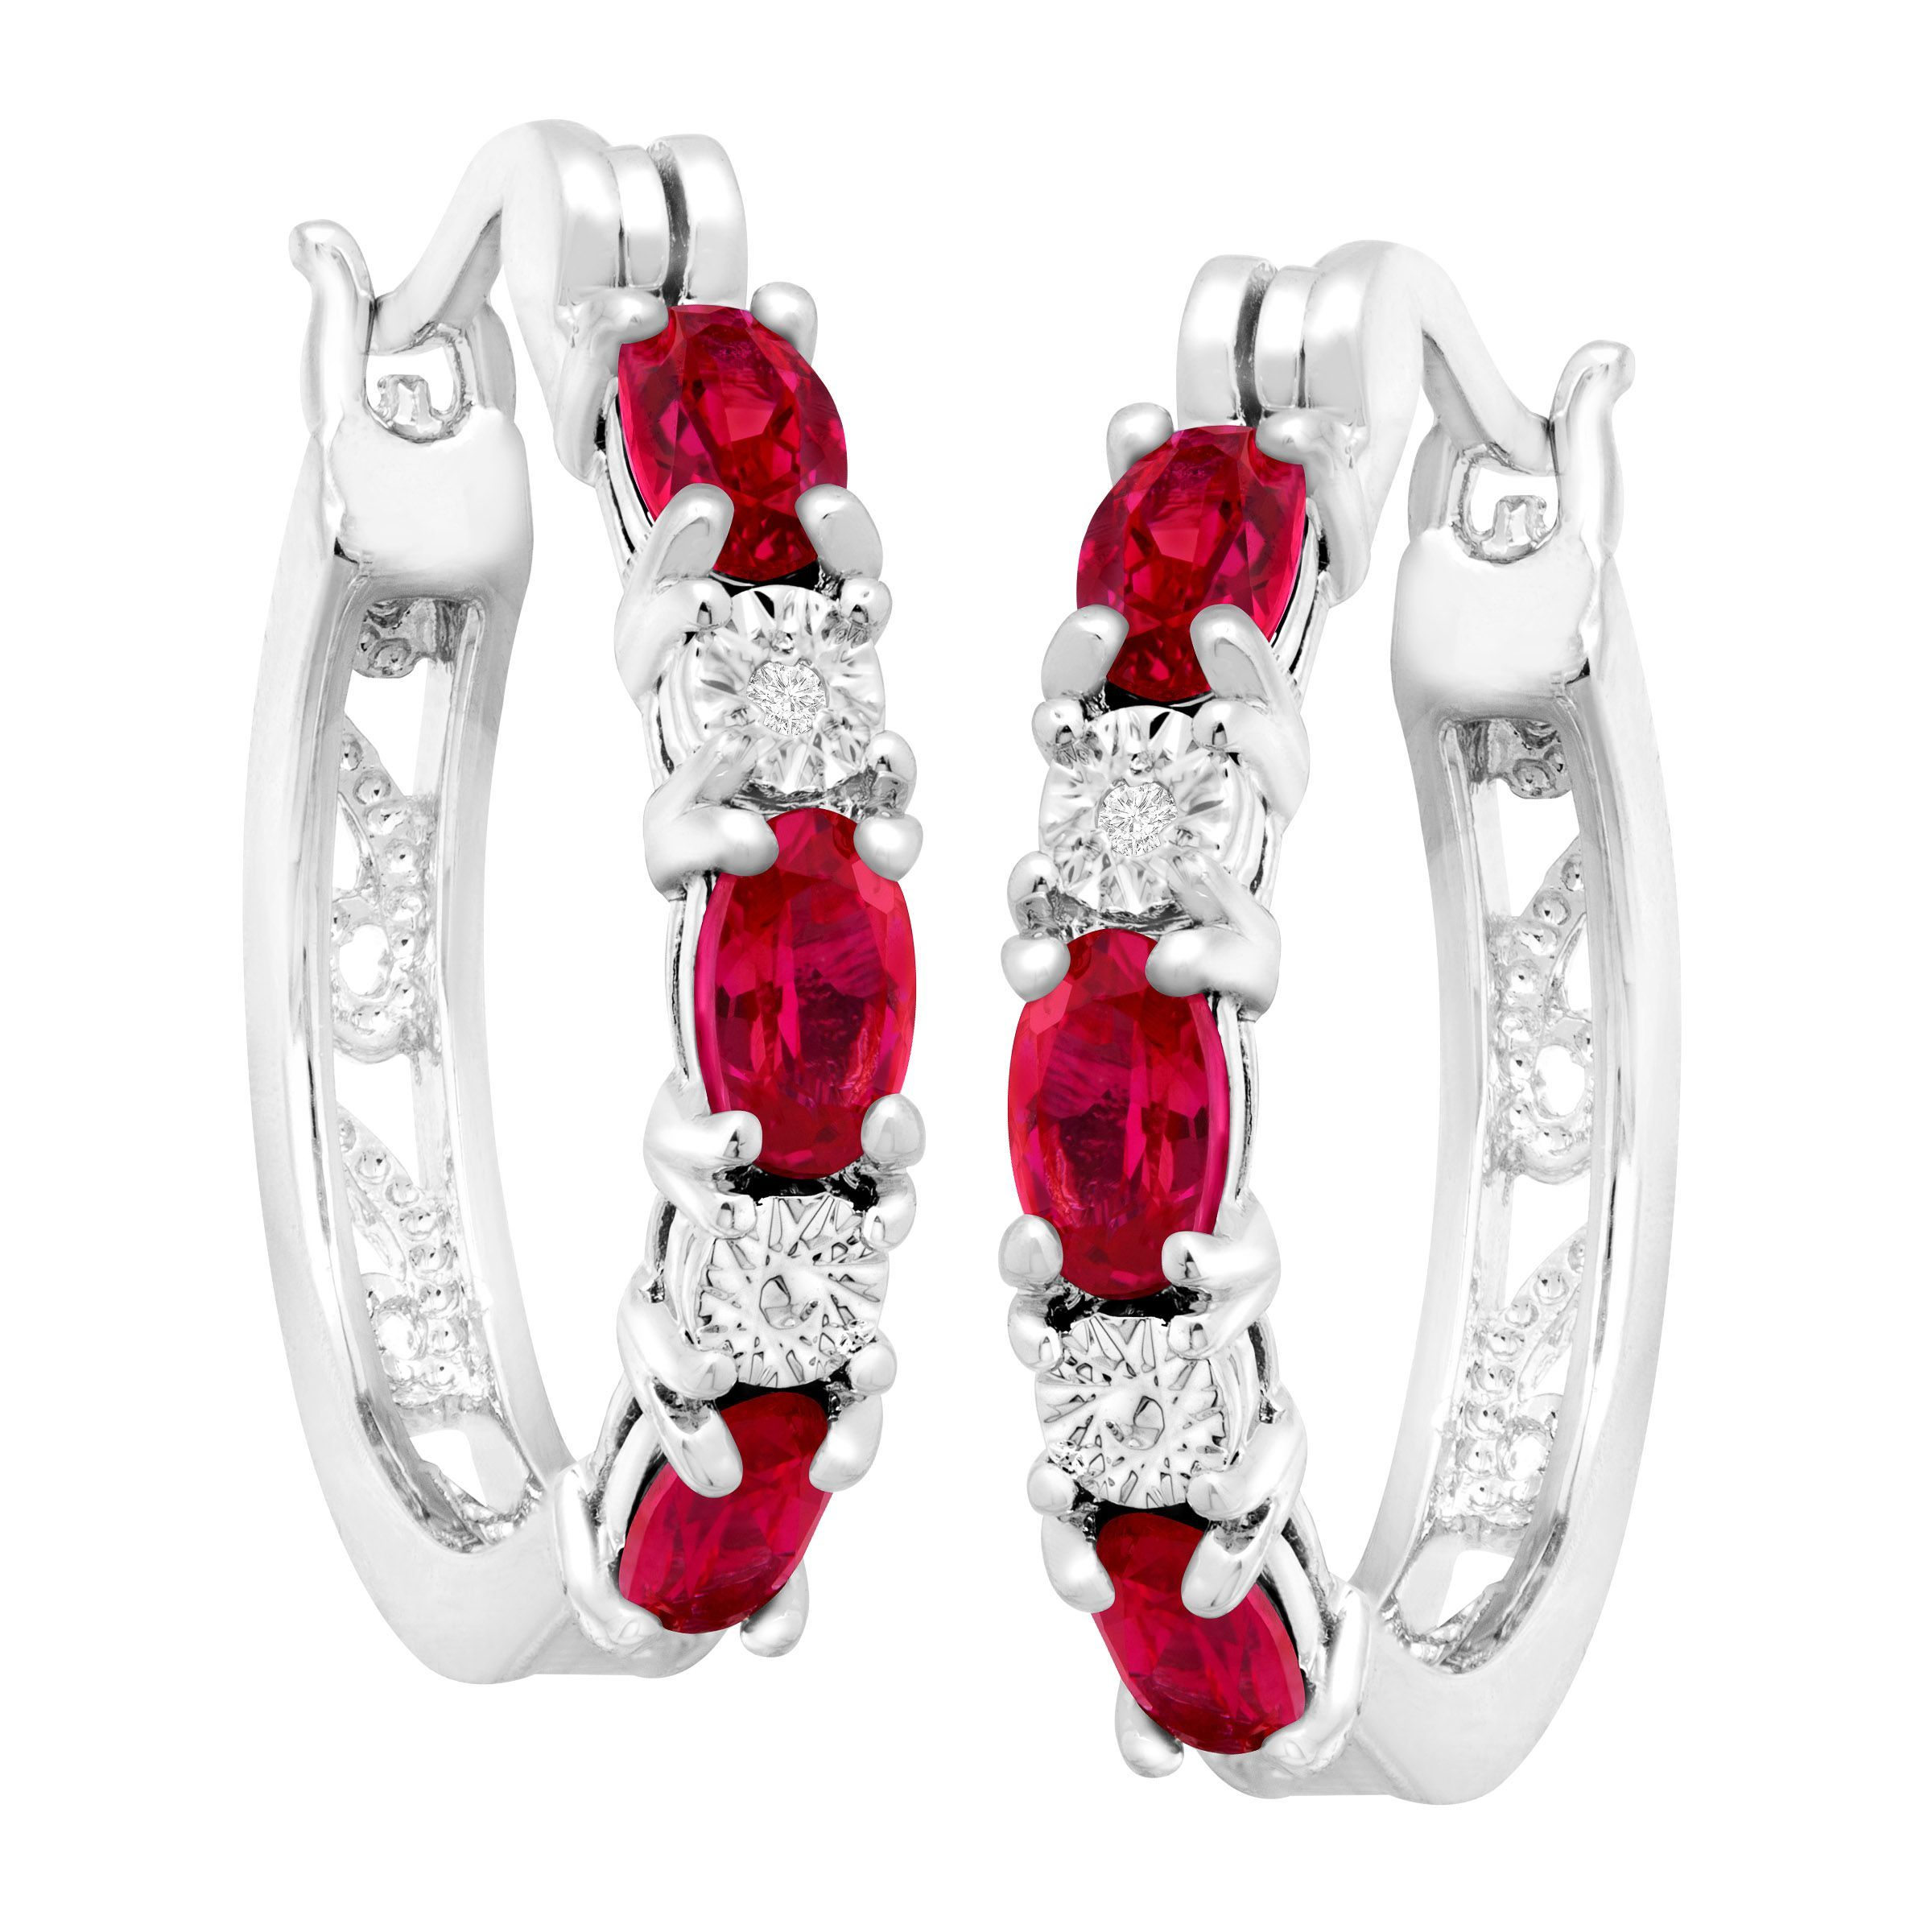 ben oval ruby jewellery earrings jeweler halo jewelry diamond bridge